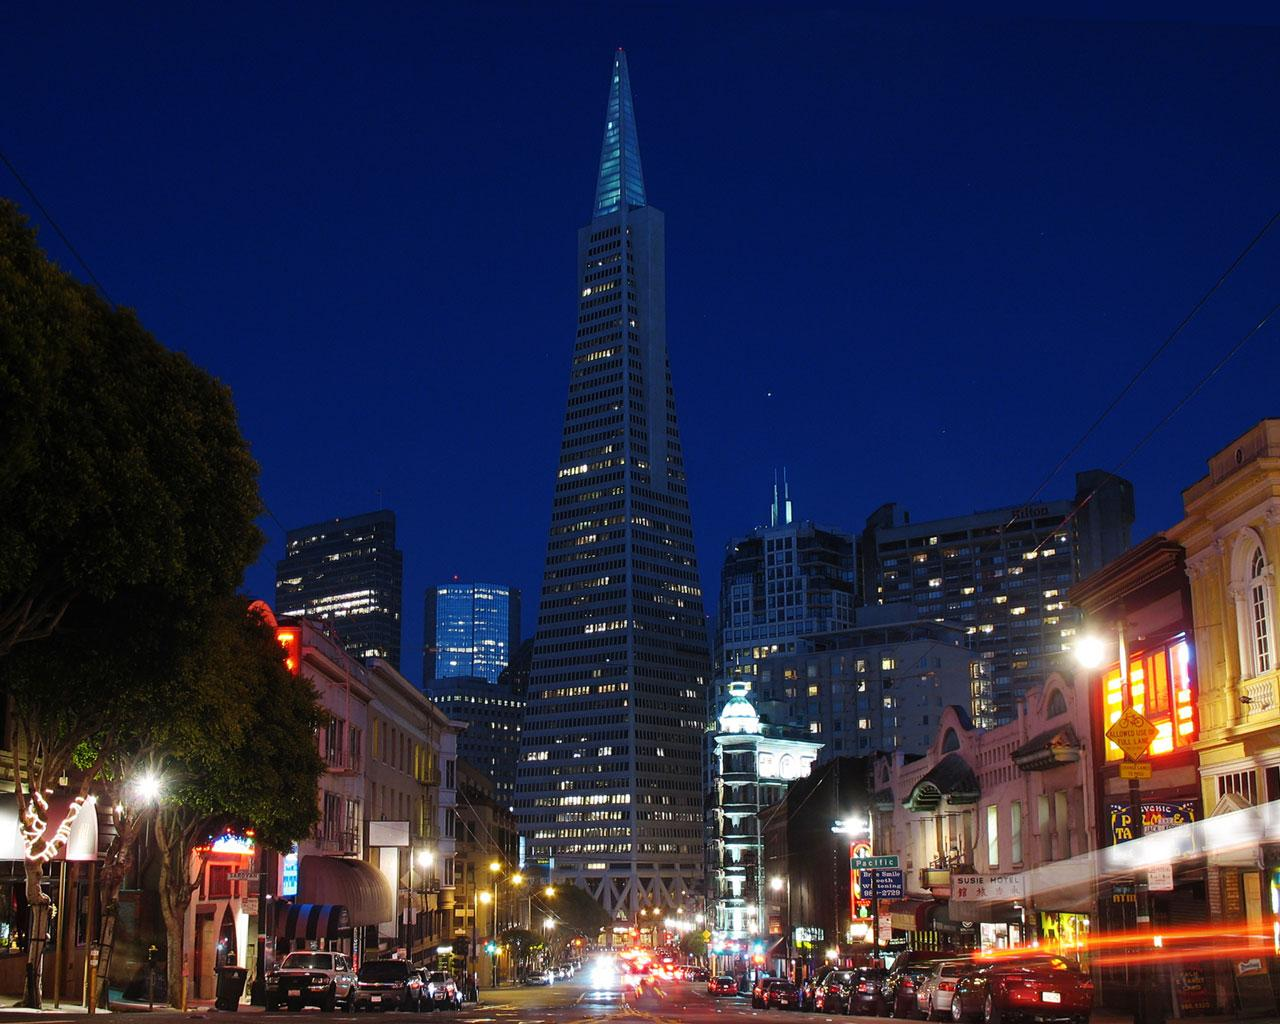 San Francisco - Transamerica Tower Wallpaper #1 1280 x 1024